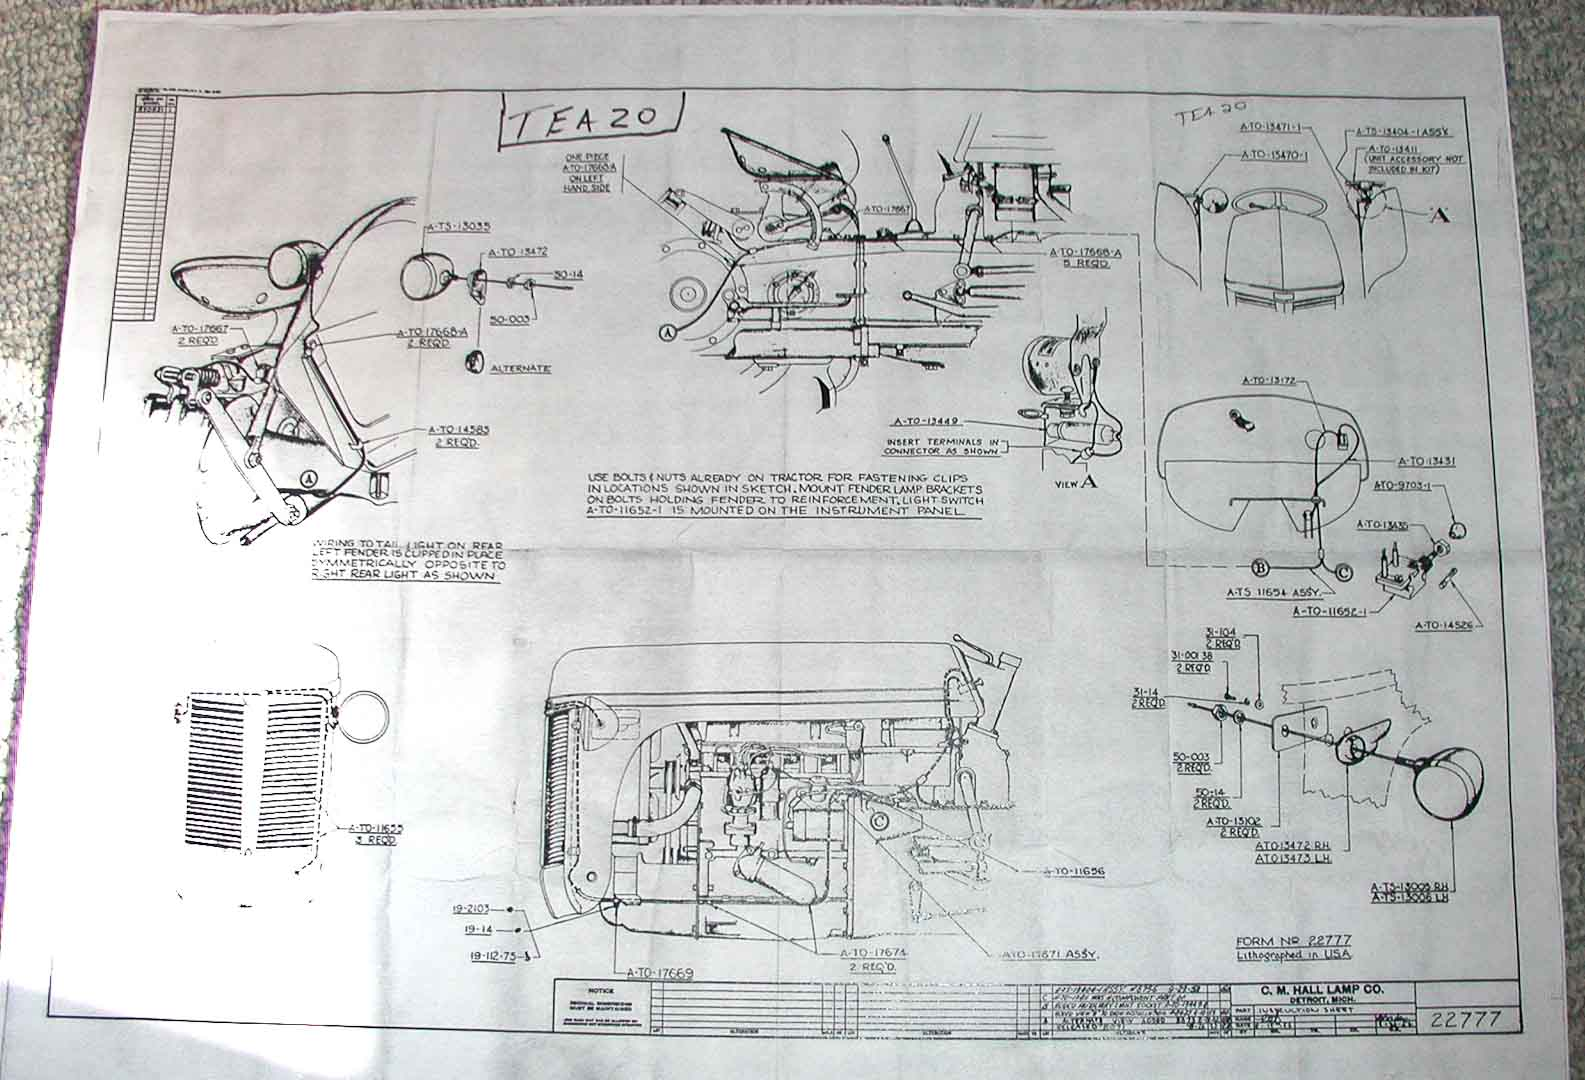 EDD59 Ferguson To30 Wiring Diagram | Digital Resources on ferguson to 20 oil filter, ferguson 40 wiring electrical, ferguson 30 tractor parts, 240 massey ferguson diagram, ferguson to35 parts diagram, ferguson to 35 wiring-diagram, massey ferguson 165 parts diagram, ferguson to 20 specifications, massey ferguson engine diagram, ferguson to 30 oil filter, ferguson to 30 voltage, ferguson to 30 clutch, massey ferguson tractor parts diagram, ferguson to 30 parts, ferguson 35 tractor schematics, ferguson tractors history, massey ferguson hydraulic diagram,